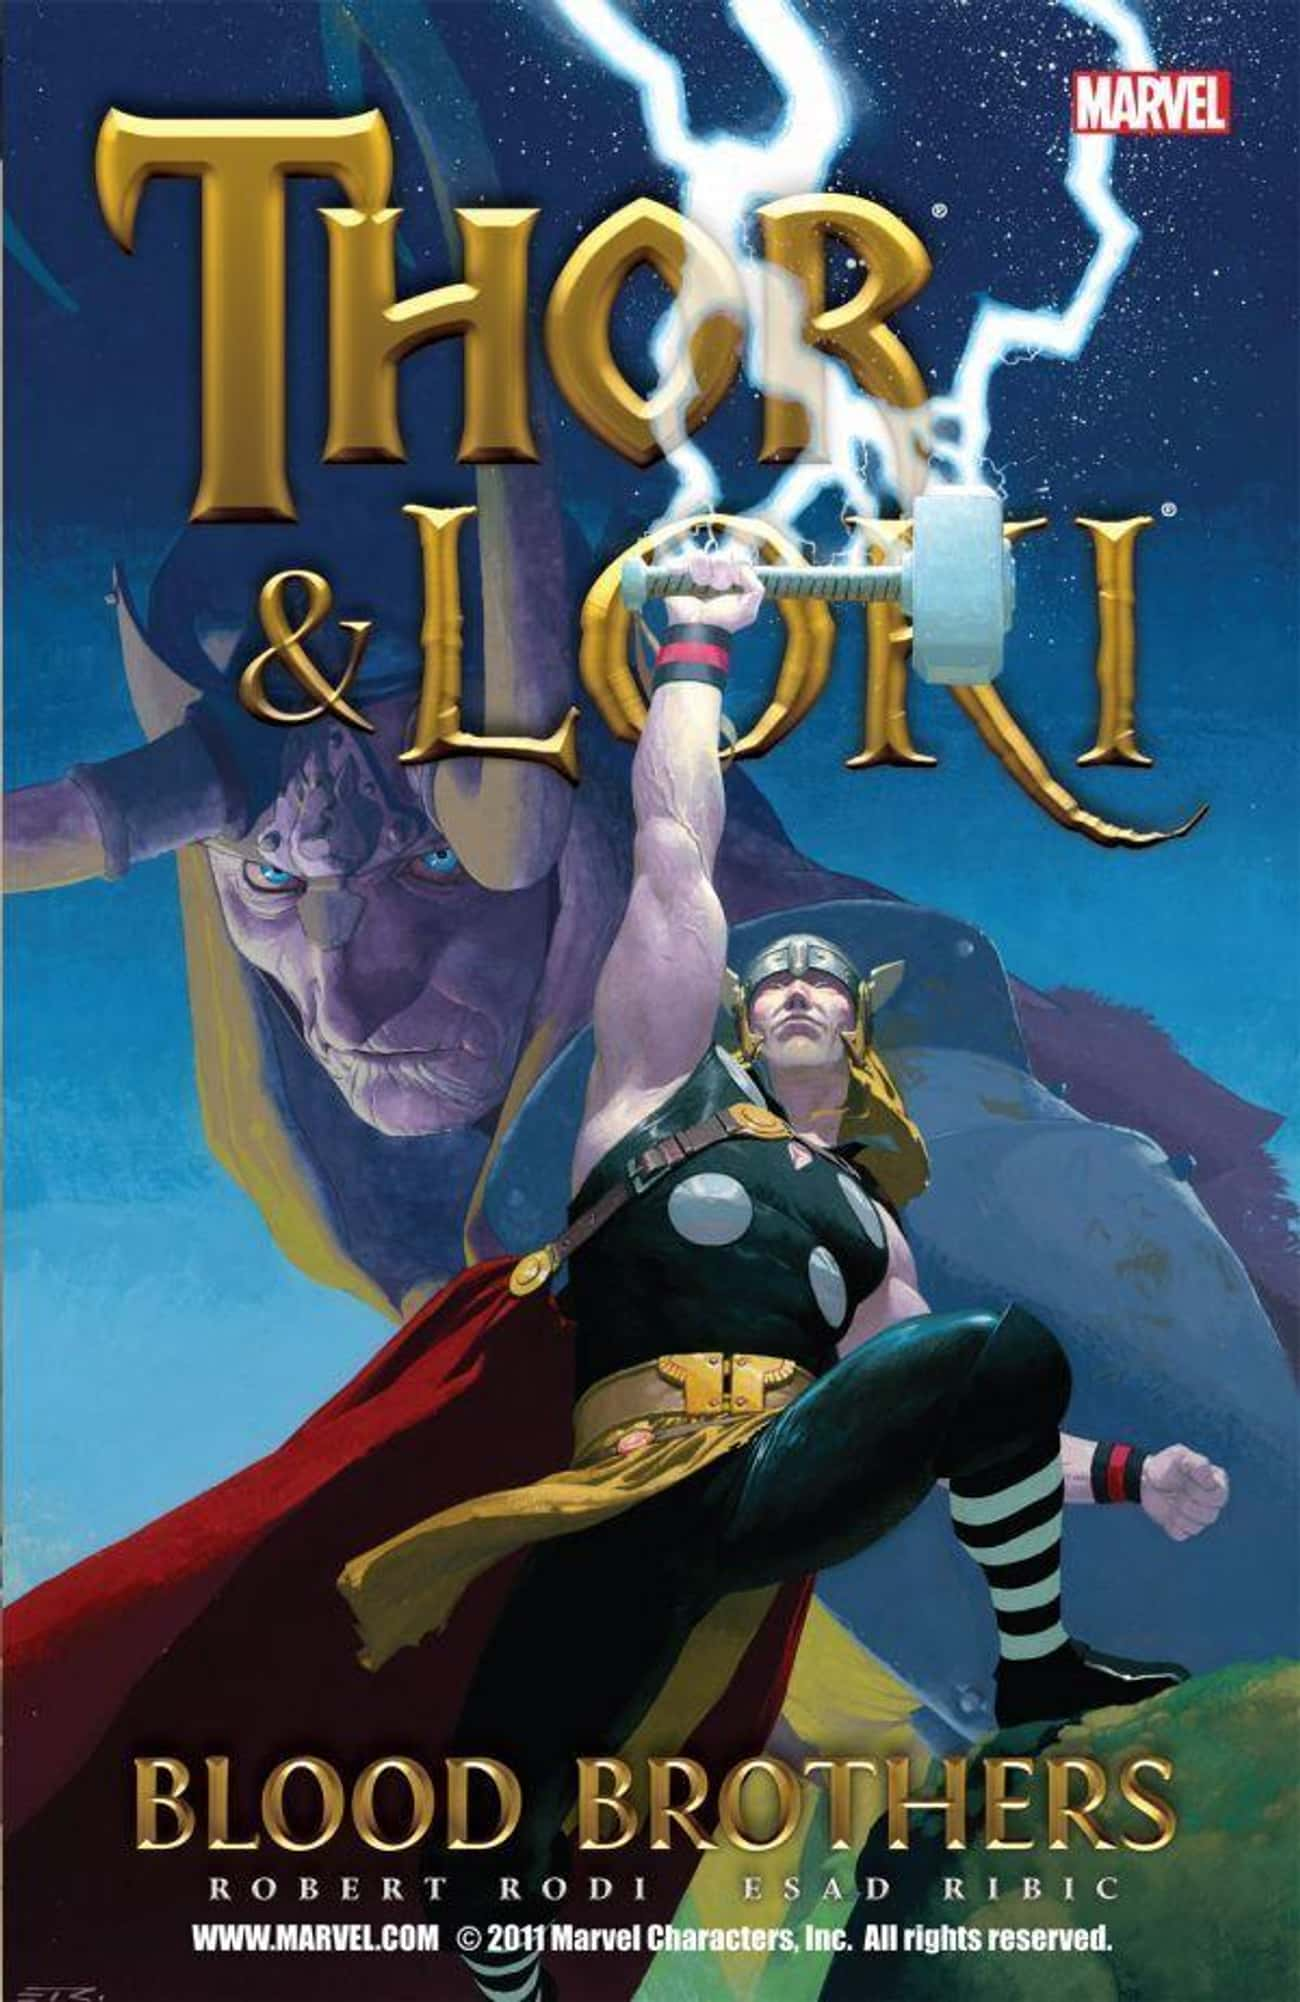 Thor & Loki: Blood Brothers is listed (or ranked) 2 on the list The Best Loki Storylines in Comics